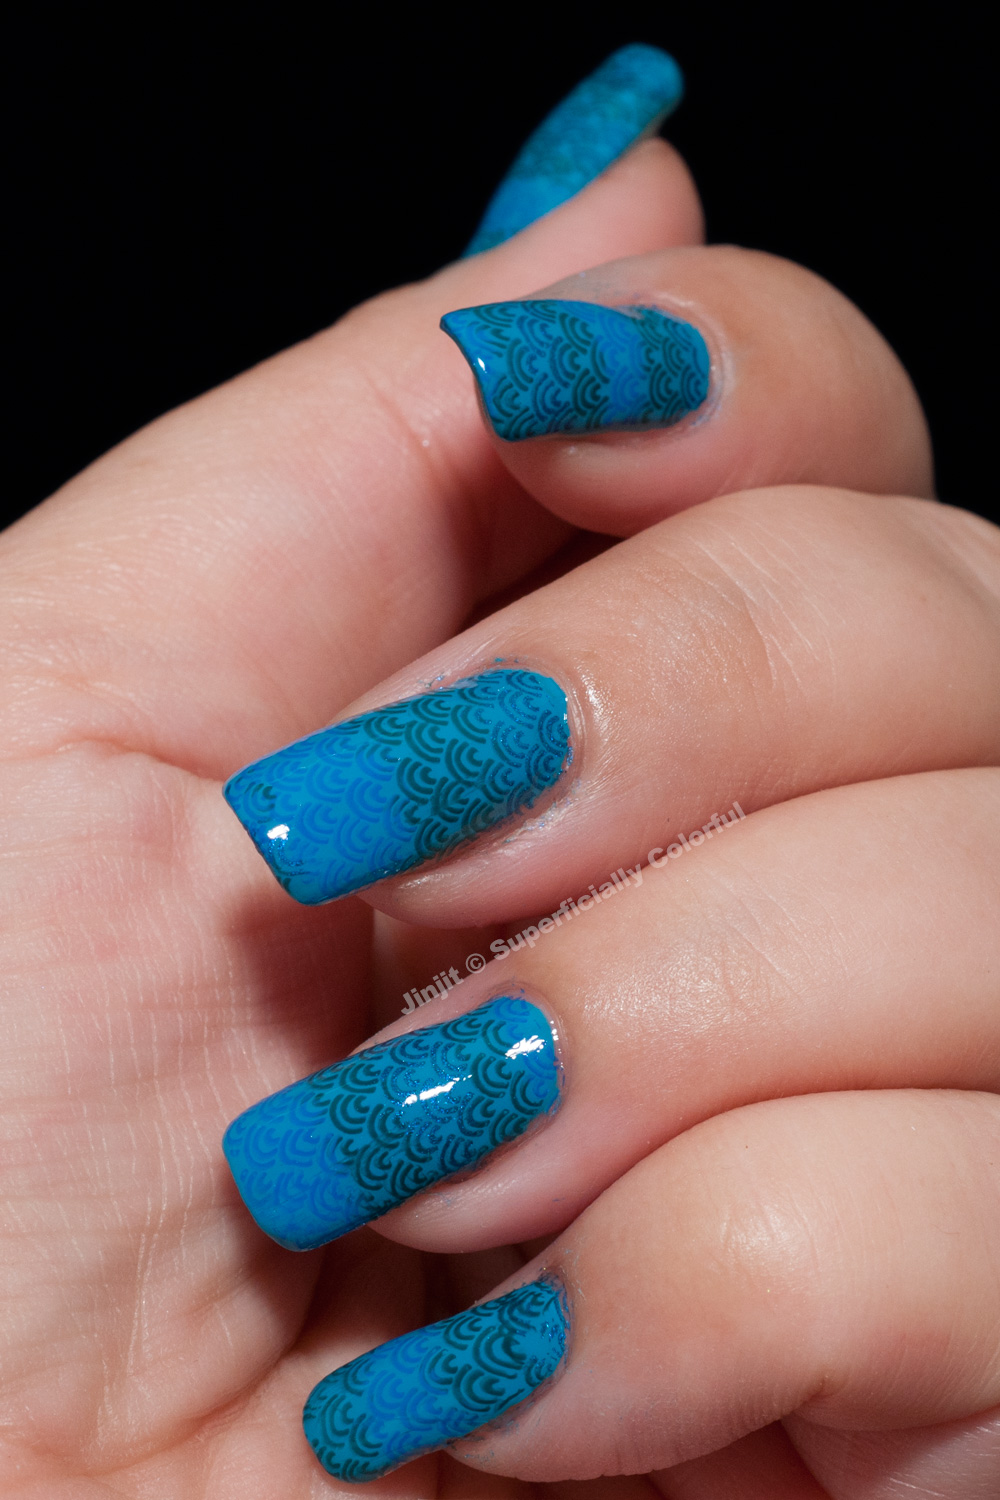 Sally Hansen Blue Me Away! Mermaid Stamping Manicure